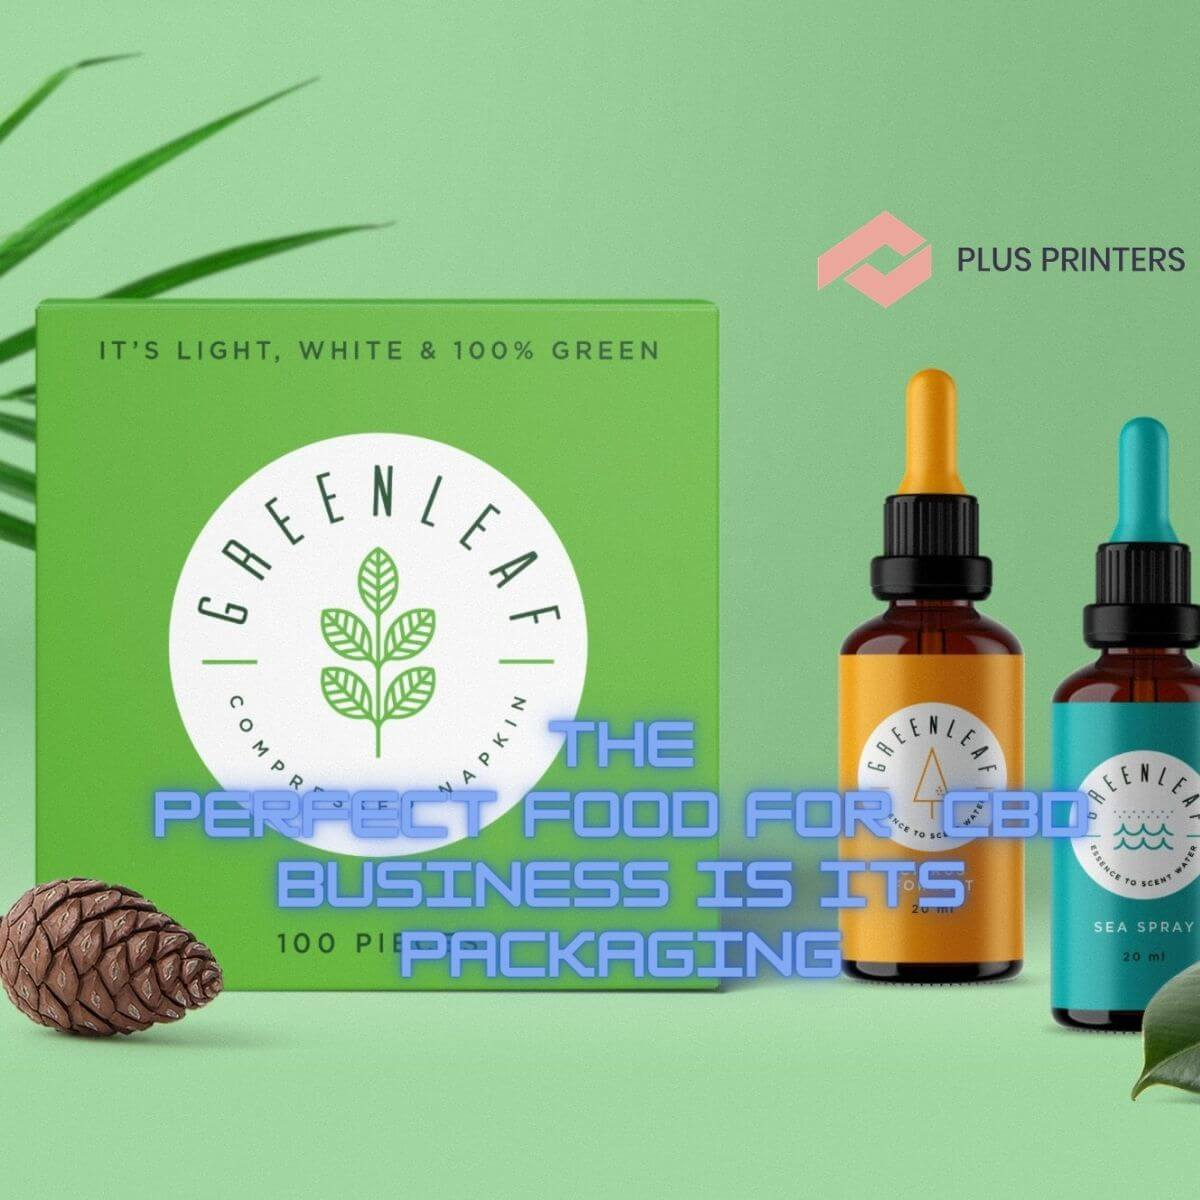 Food for CBD Business Is Its Packaging